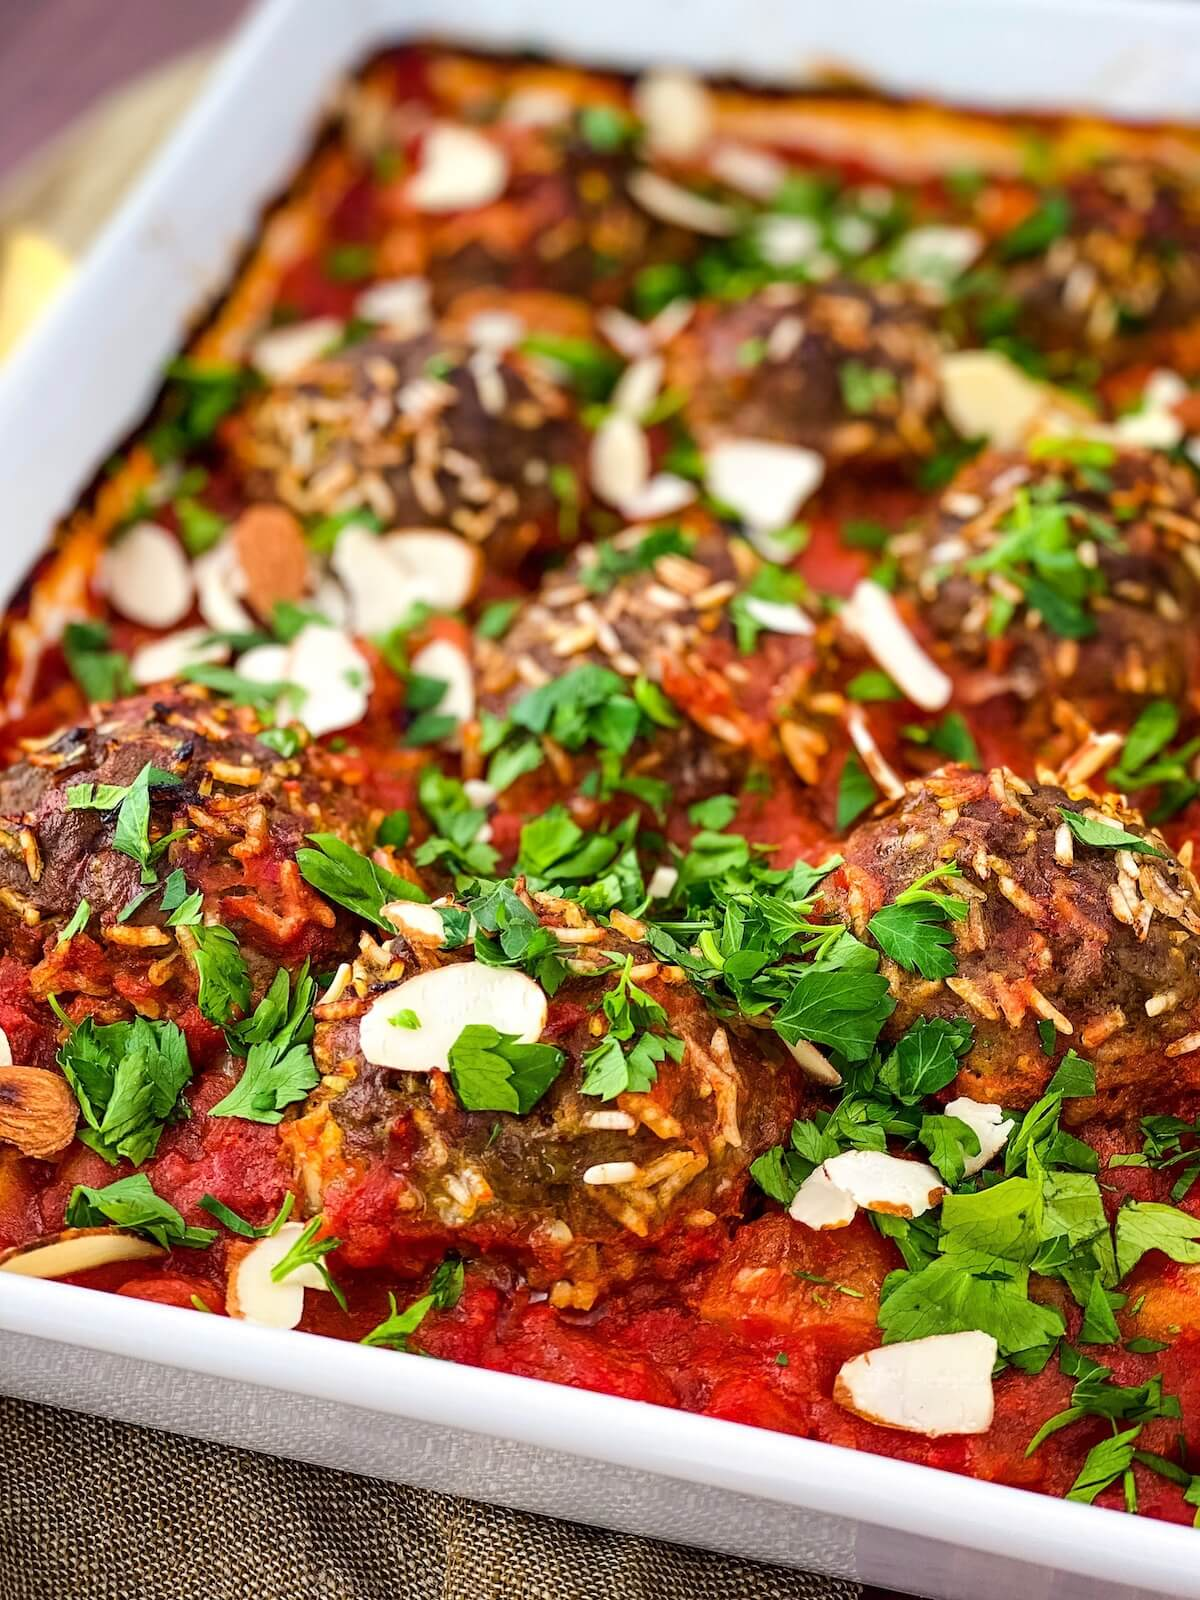 meatballs with parsley and almonds on top in a dish